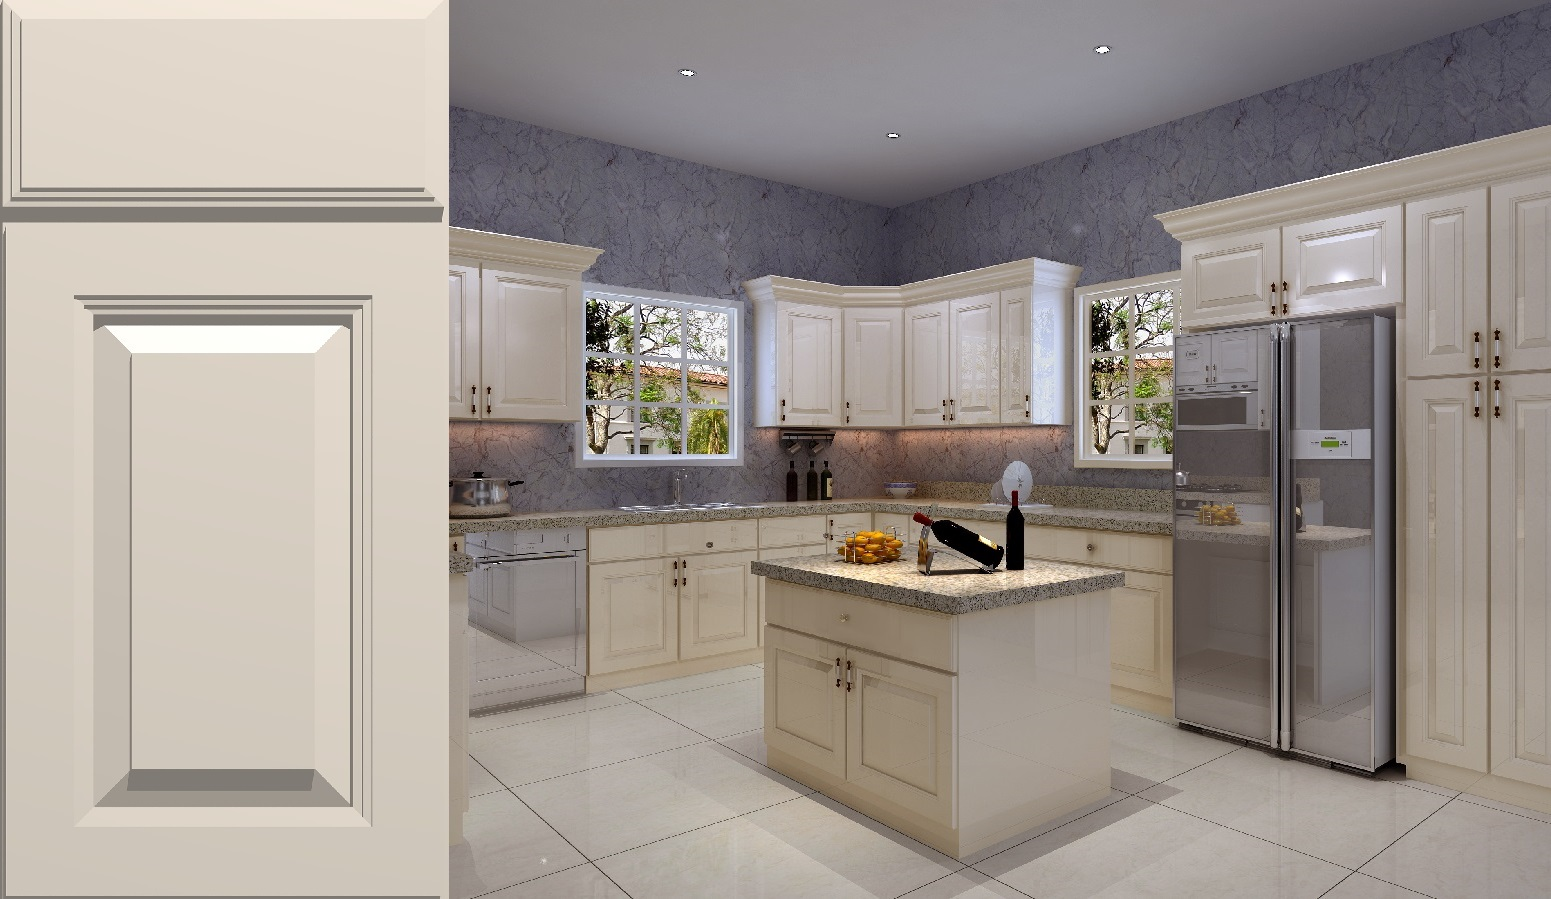 cabinet cabinets ideas photo design kitchen birch painting home